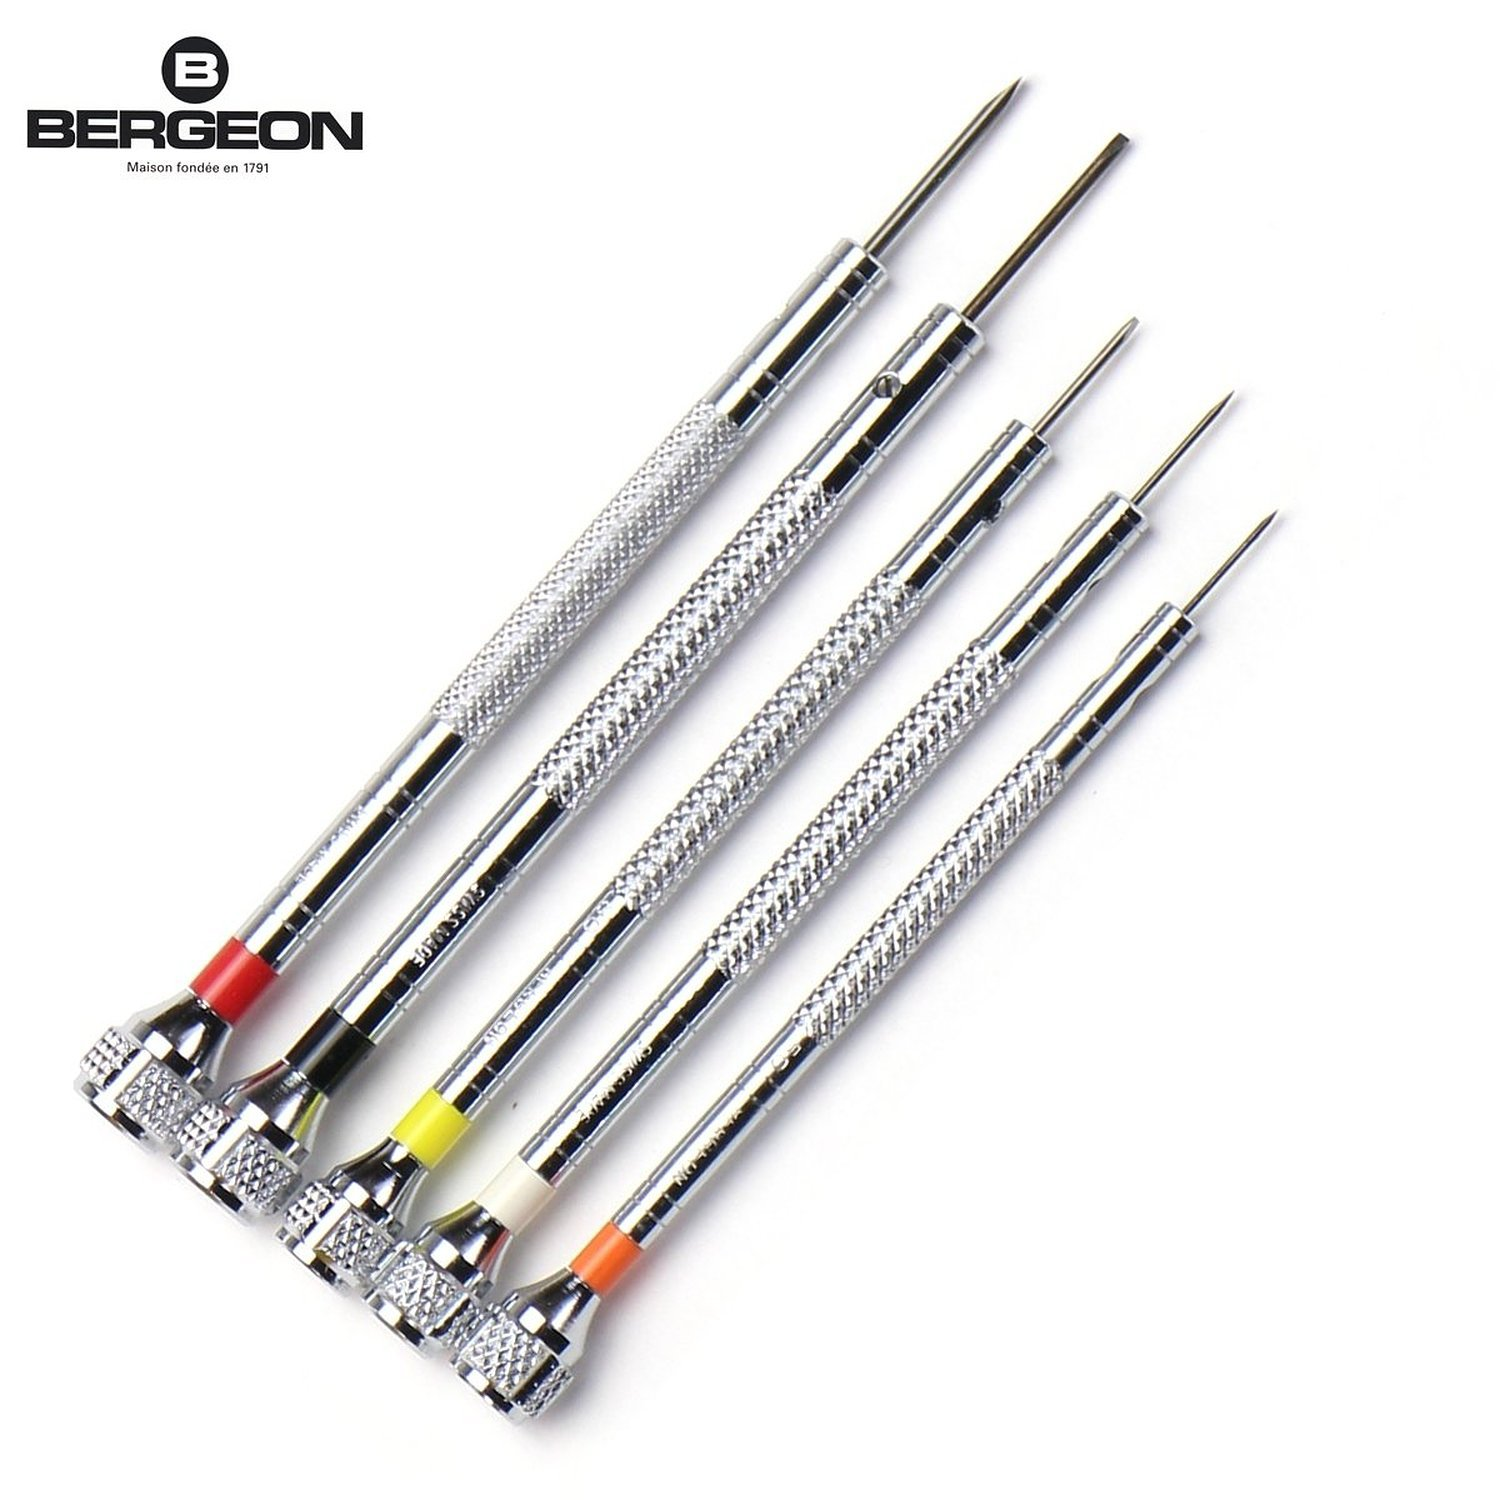 New Bergeon 2868 Screwdrivers Set Japan